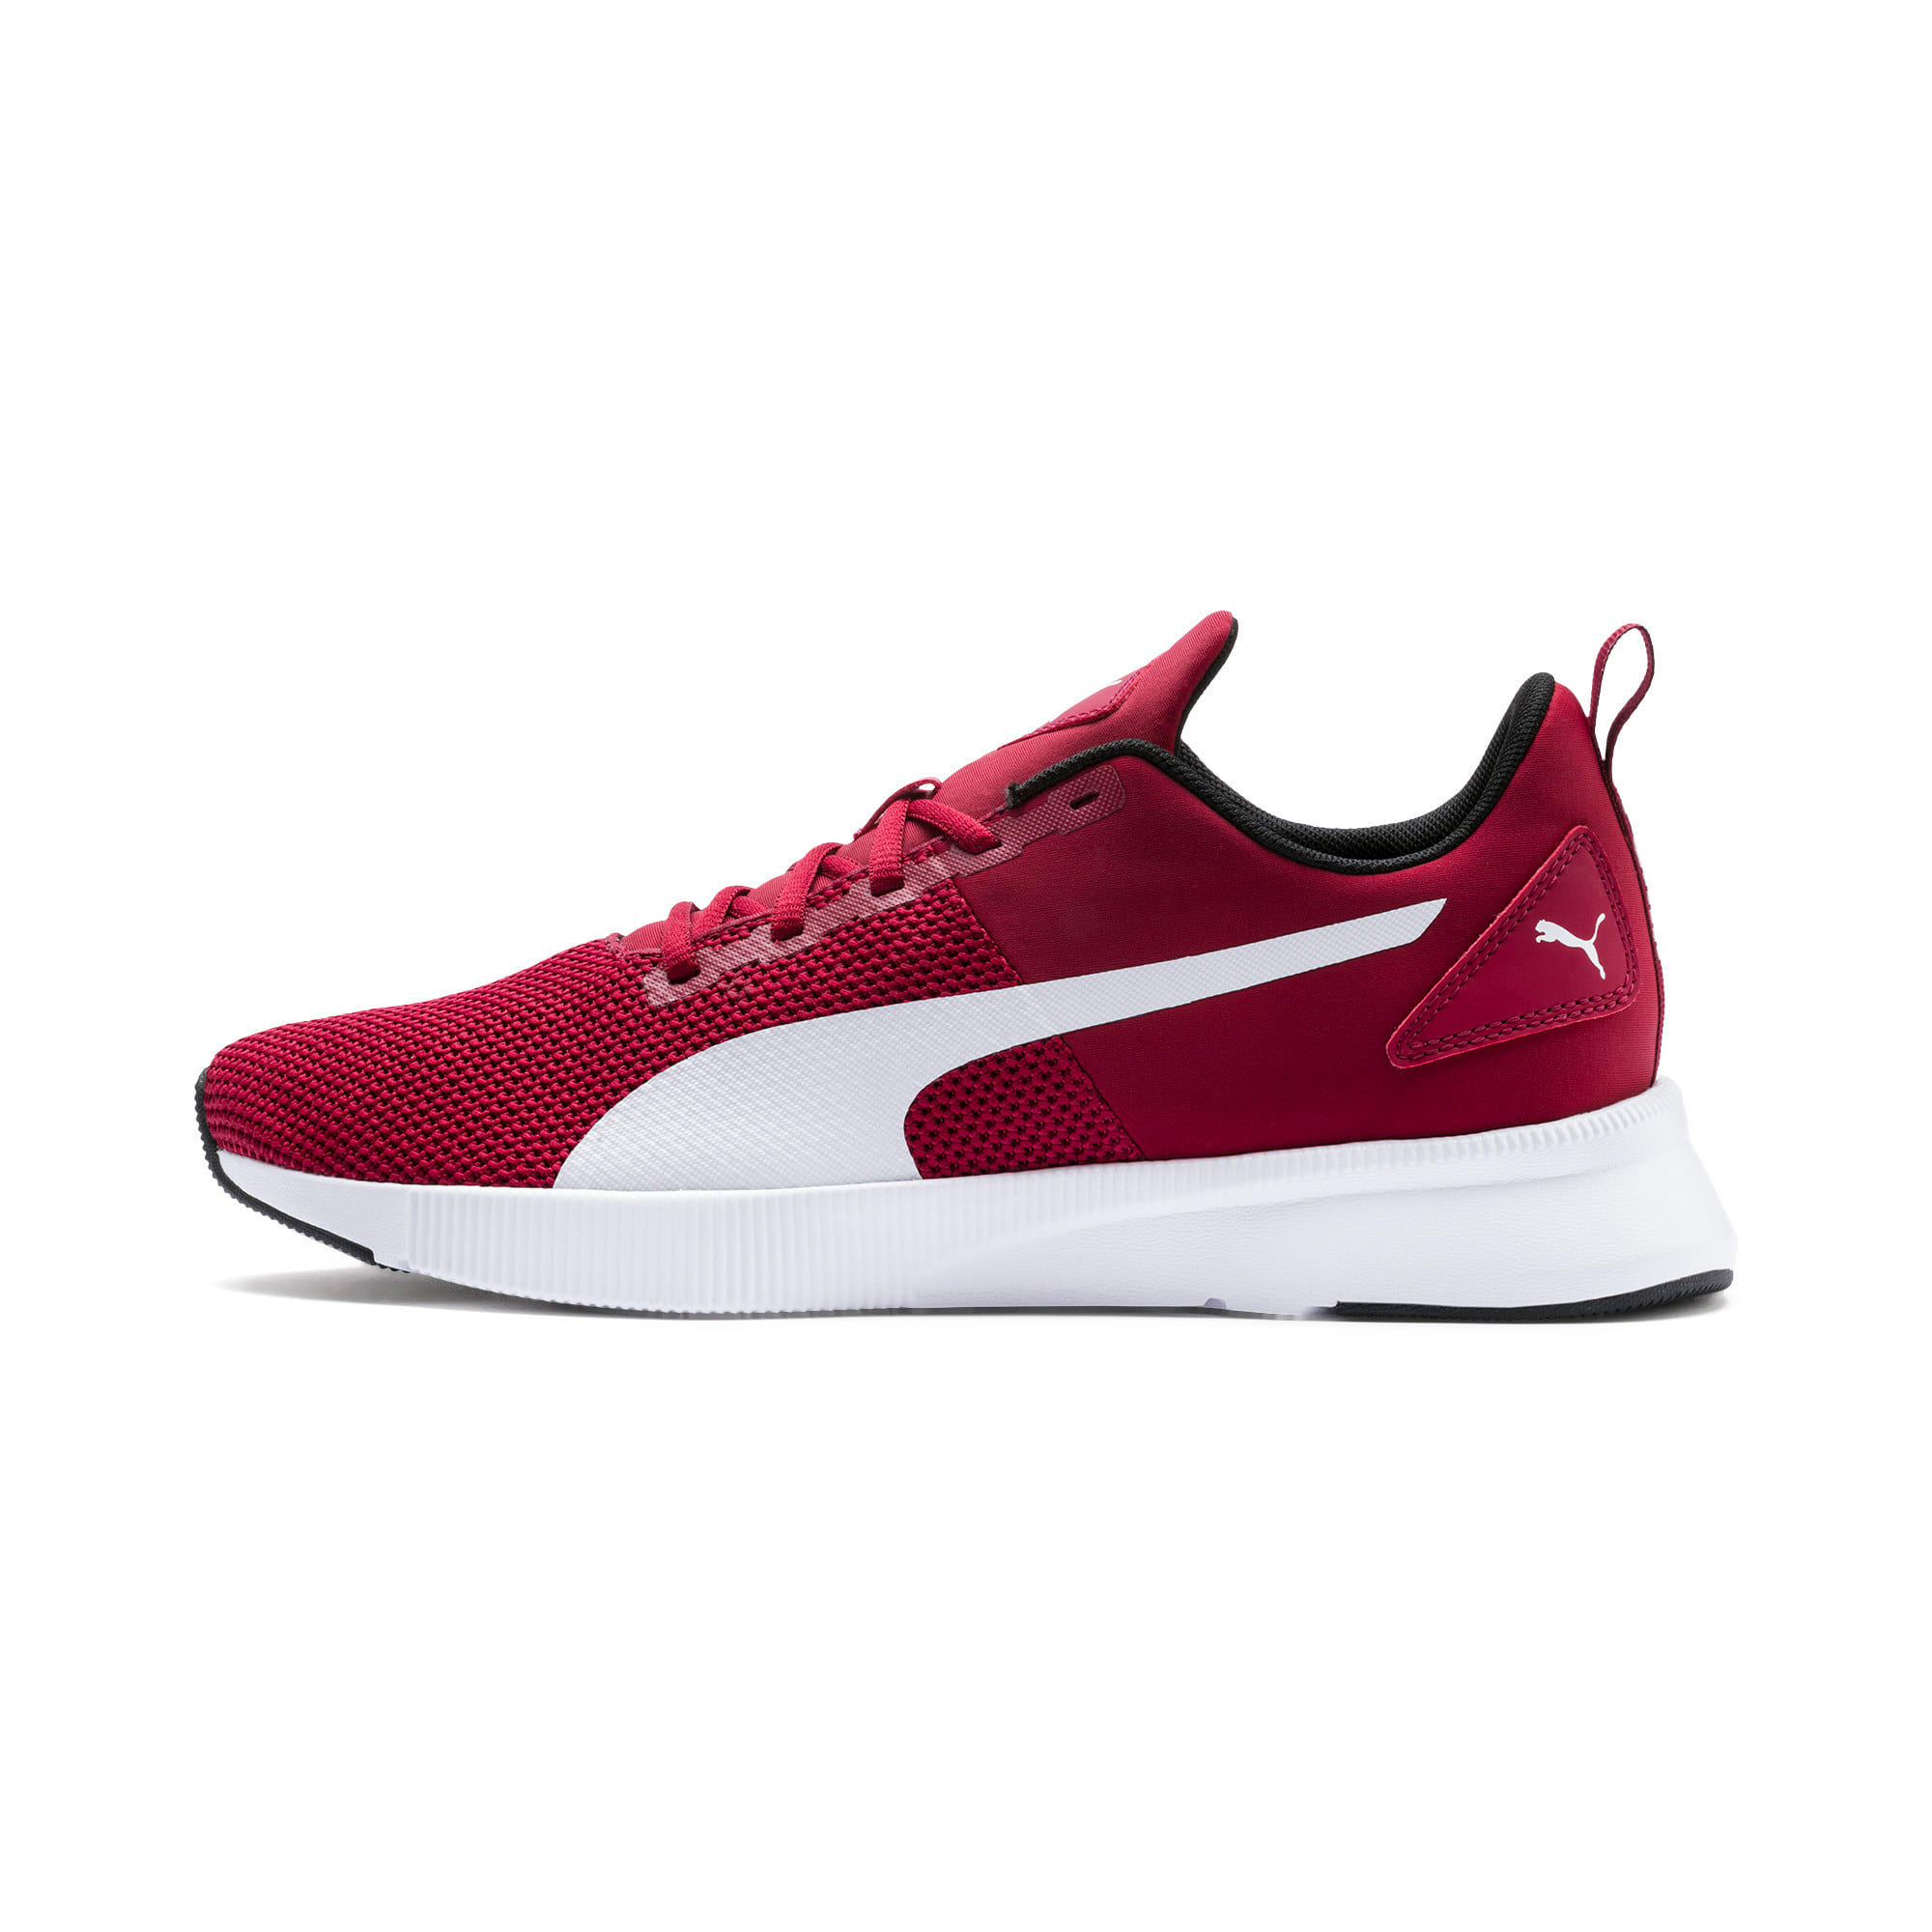 Thumbnail 1 of Flyer Runner Running Shoes, Rhubarb-Puma White, medium